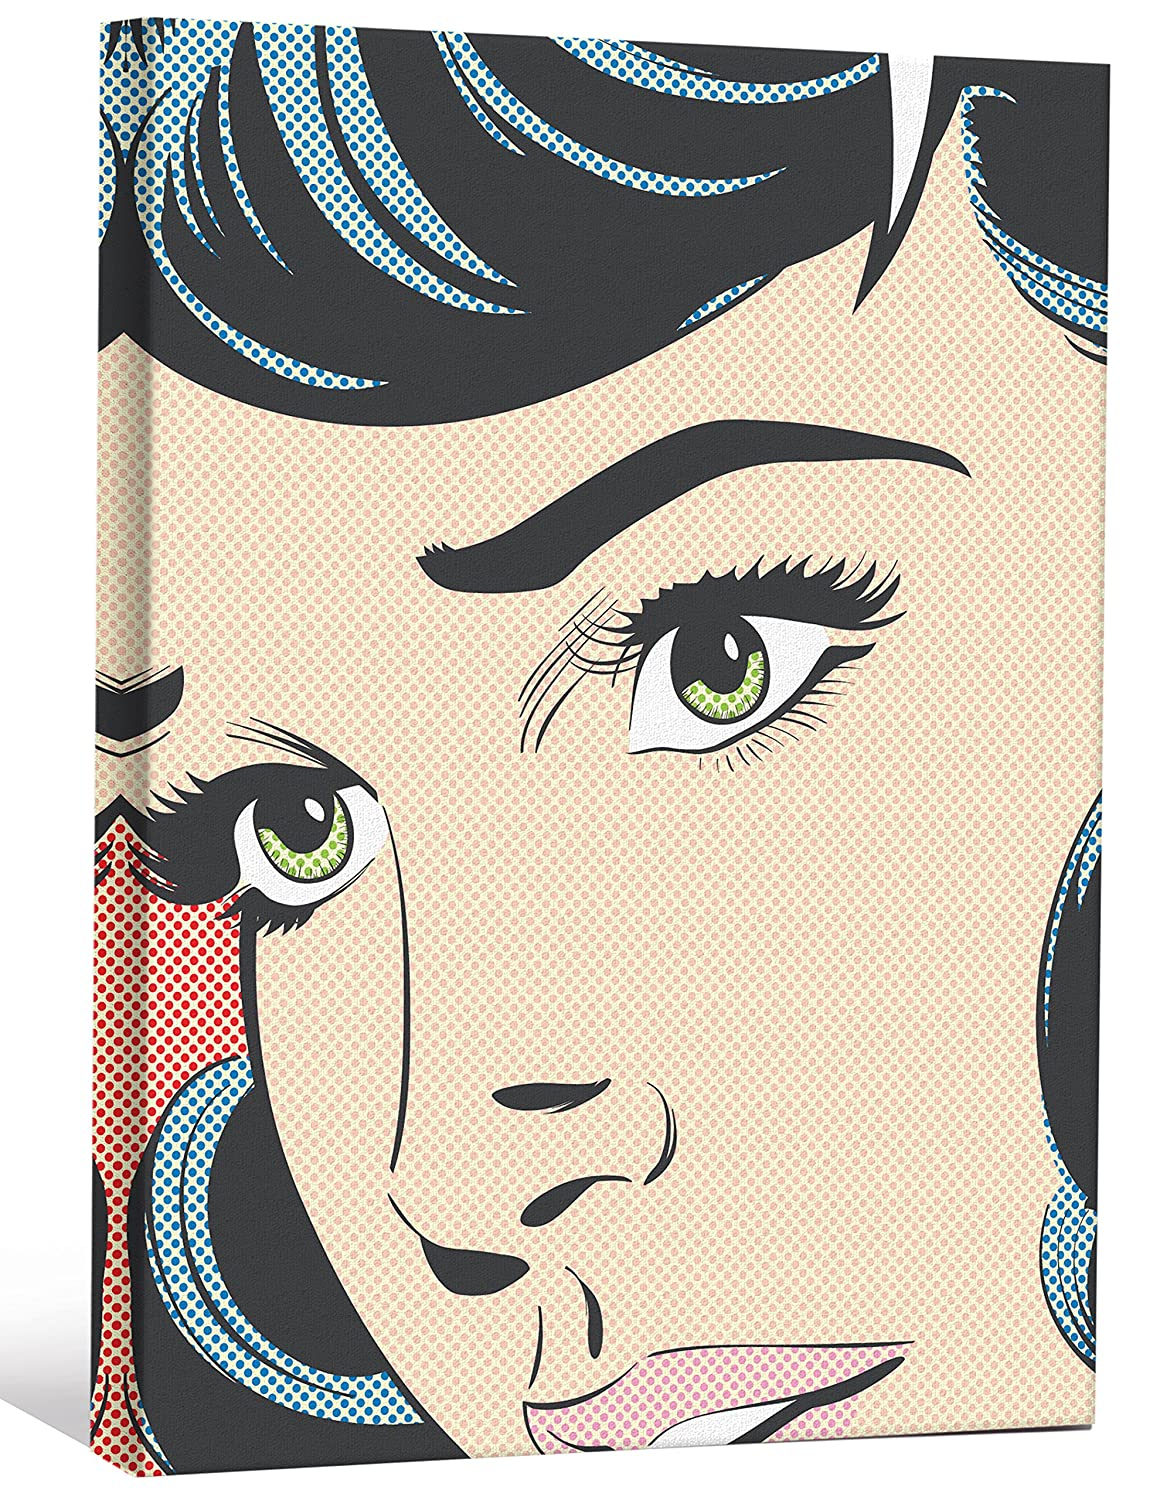 Amazon.com: JP Londres lcnv2331 Pop Art Girl de cómics de ...